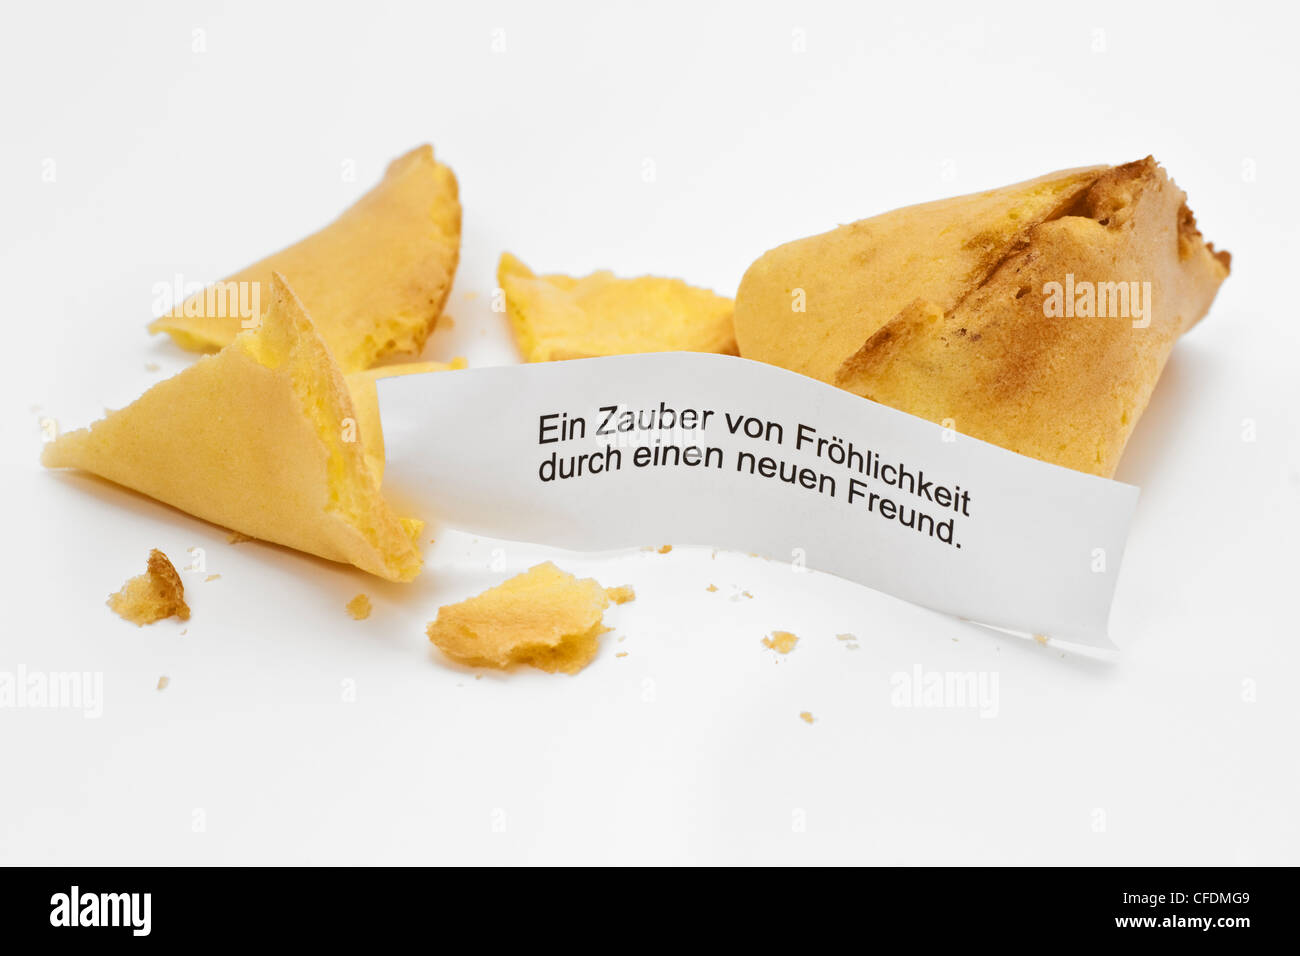 Detail photo of a fortune cookie, a slogan in German language is alongside. - Stock Image